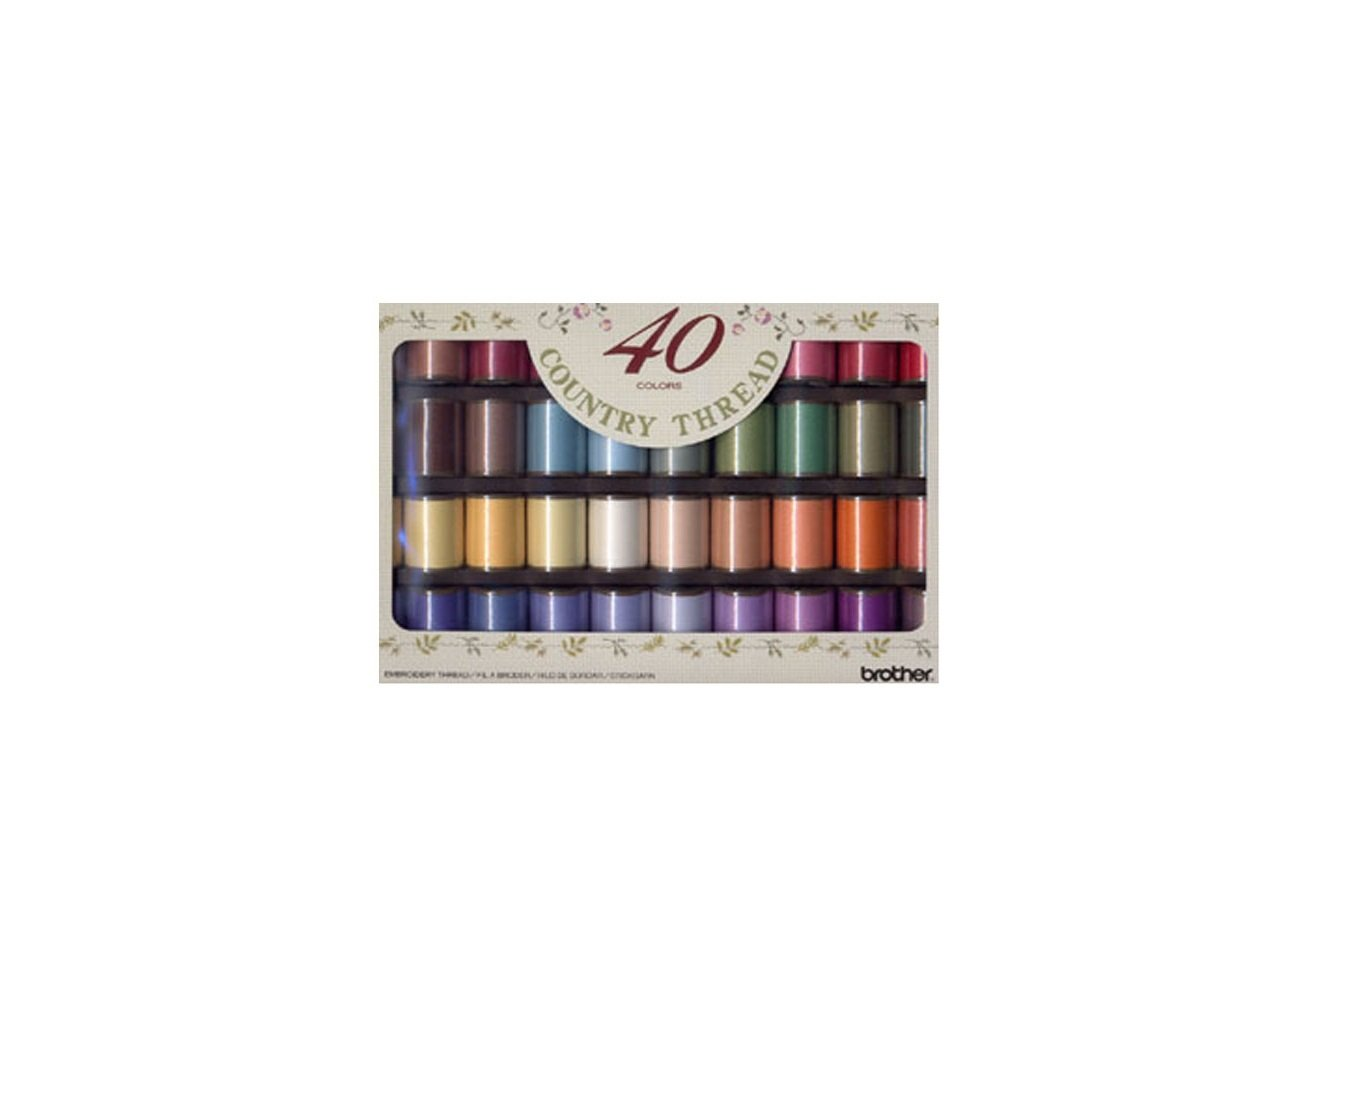 ETM40 Matte Country Thread Brother Embroidery Price Cheap Quality Sewing